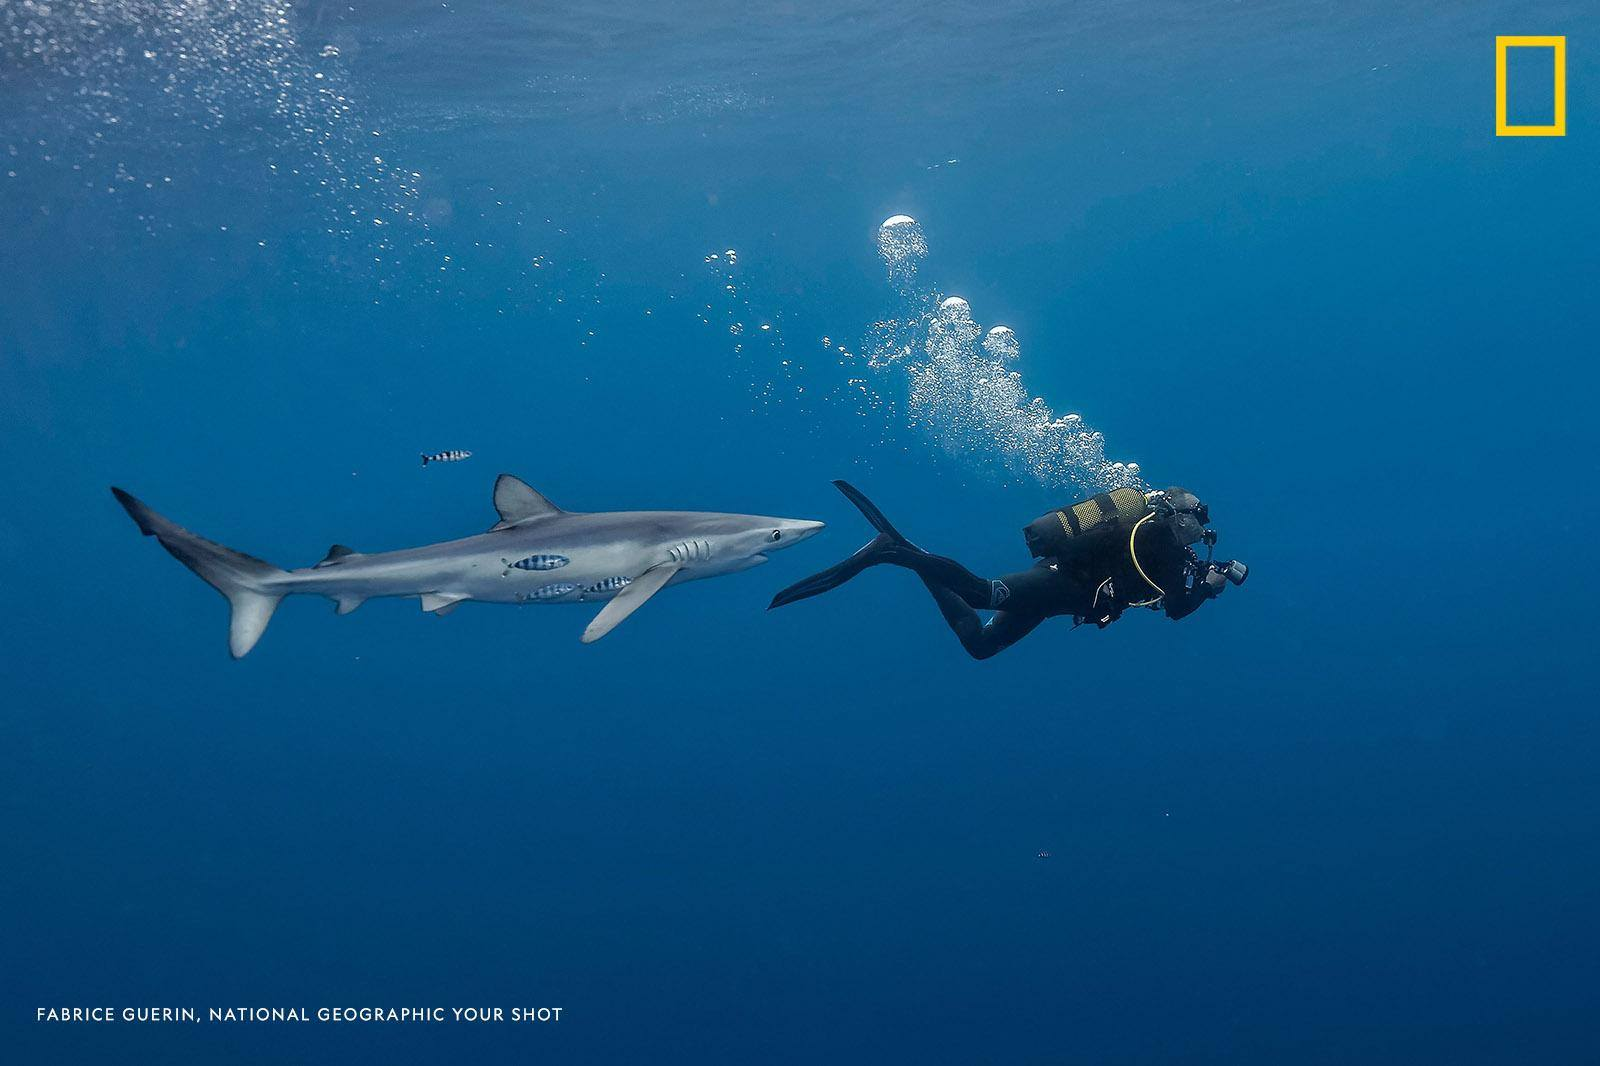 """""""When you take underwater pictures,"""" writes photographer Fabrice Guerin """"sometimes you forget about the environment. This day, we looked for blue sharks when suddenly I saw one just behind my buddy. The blue shark was very curious and came very close, but there was no danger on this day."""" https://on.natgeo.com/2Skwl3X"""